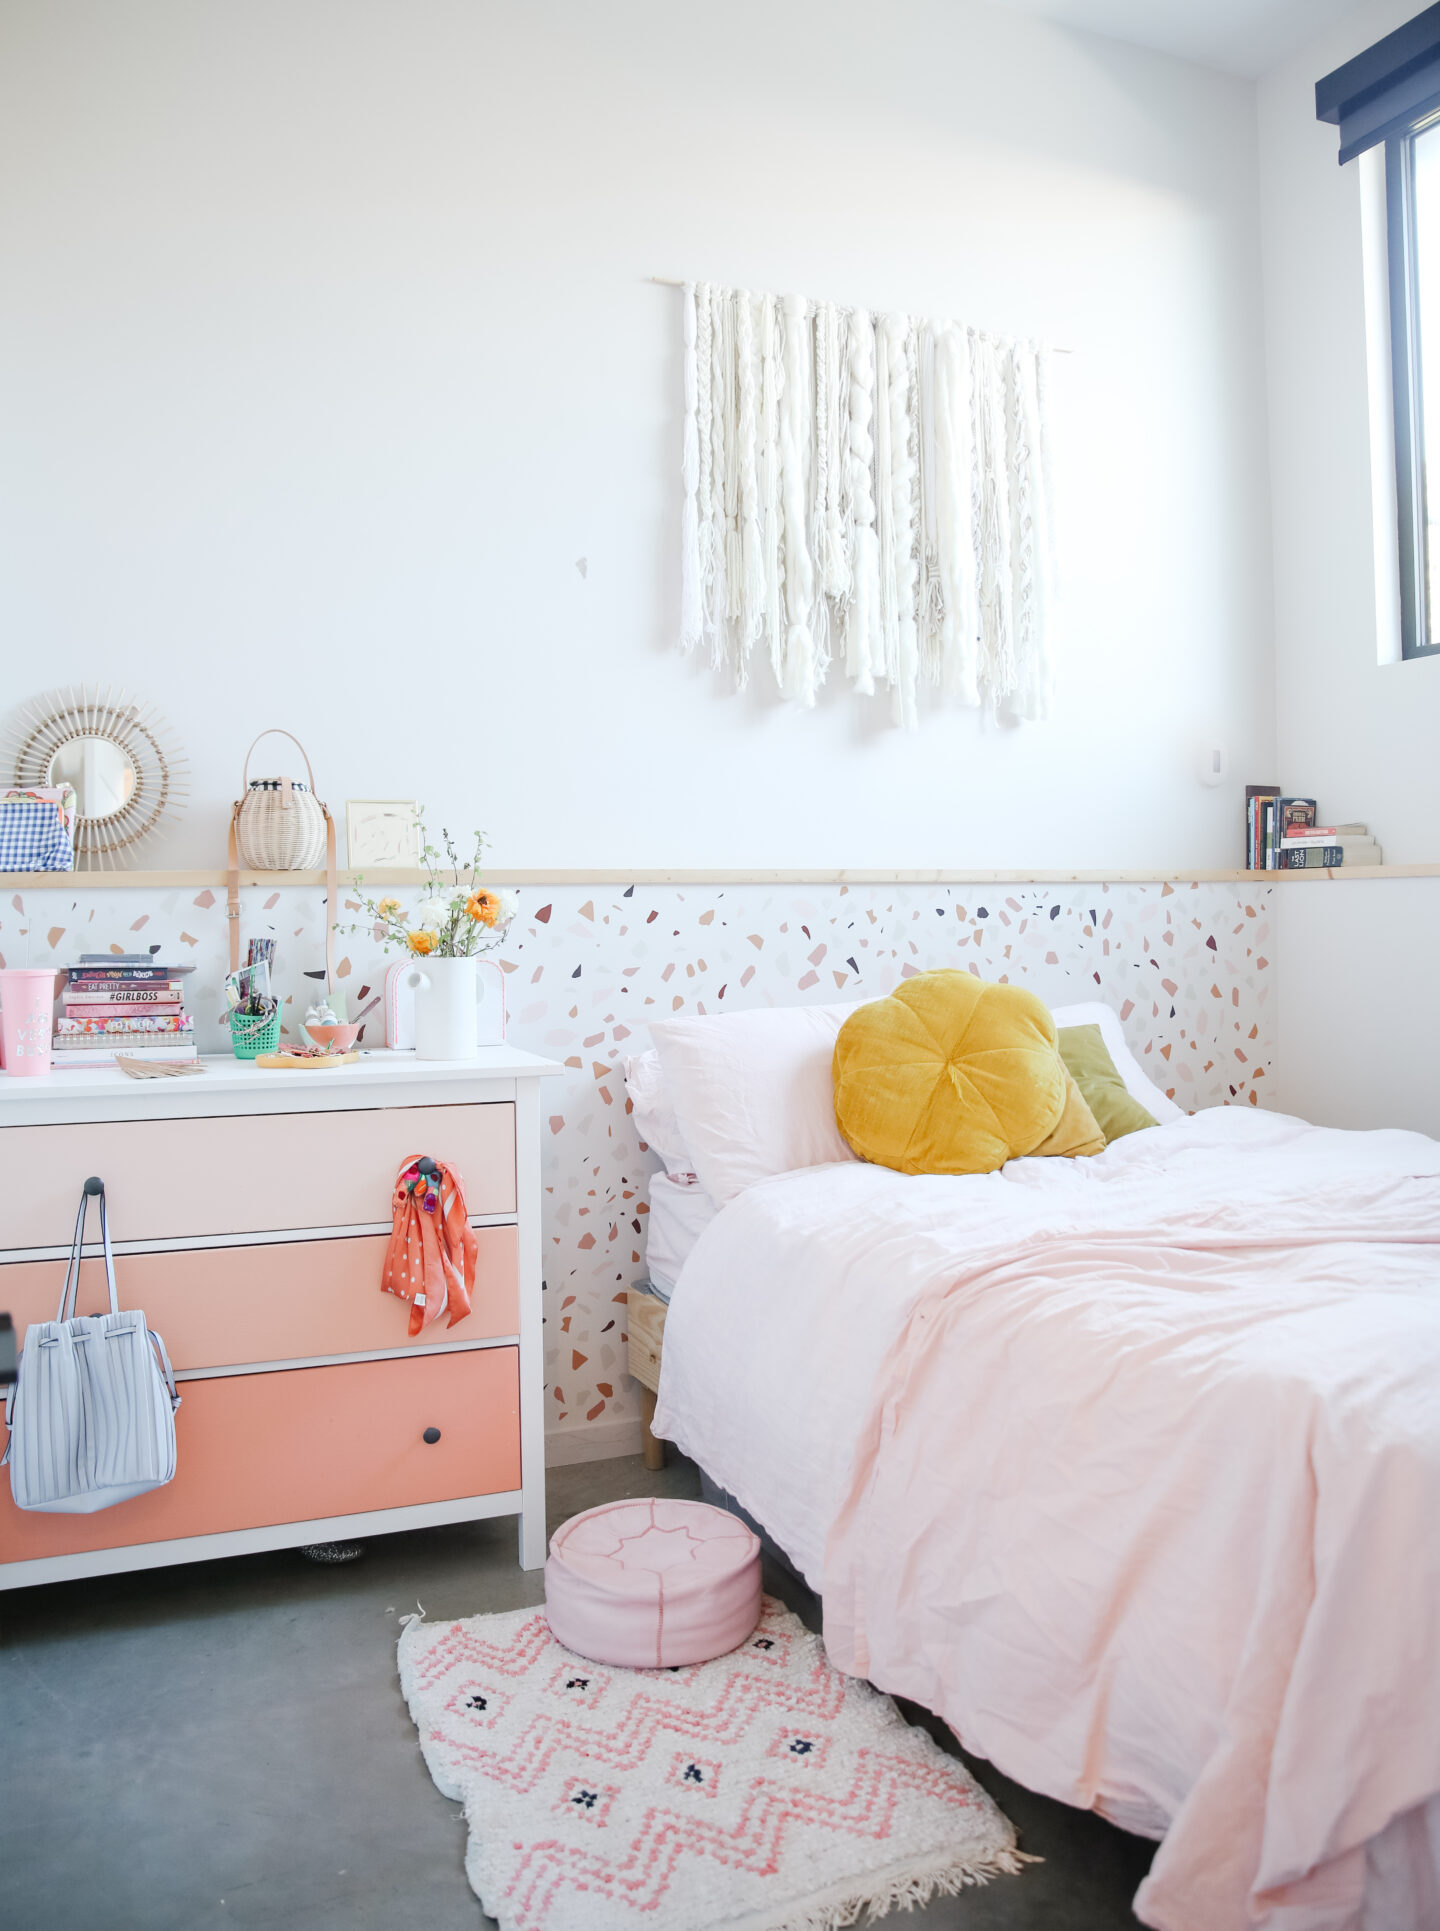 Bedroom makeover: Terrazzo wallpaper and DIY wall hanging